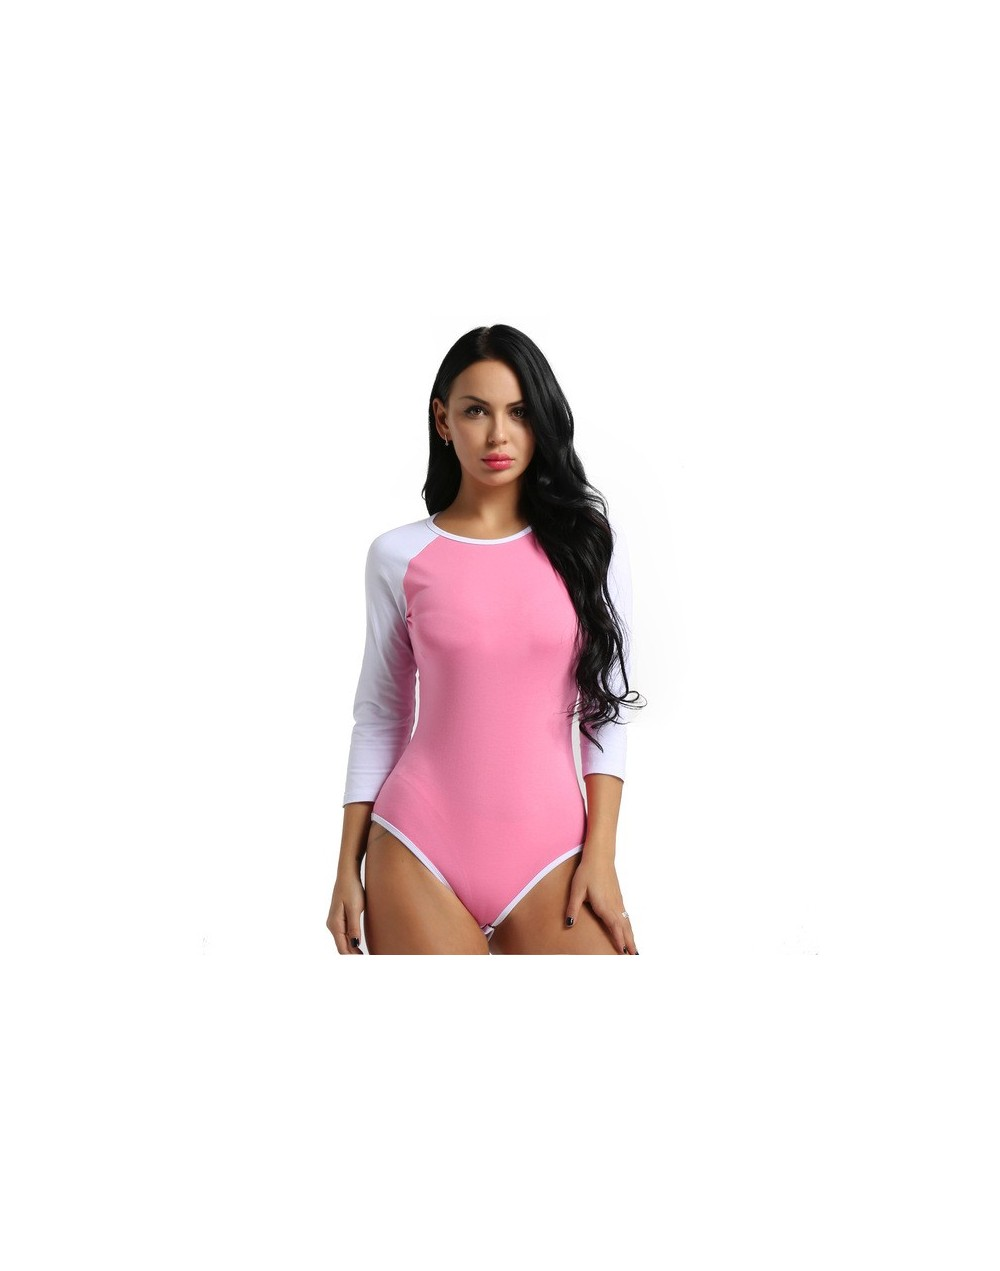 Adult Women Long Sleeves Press Botton Crotch Cotton One Piece Romper Jumpsuit Bodysuit Cosplay Costumes Bodystocking for Fem...